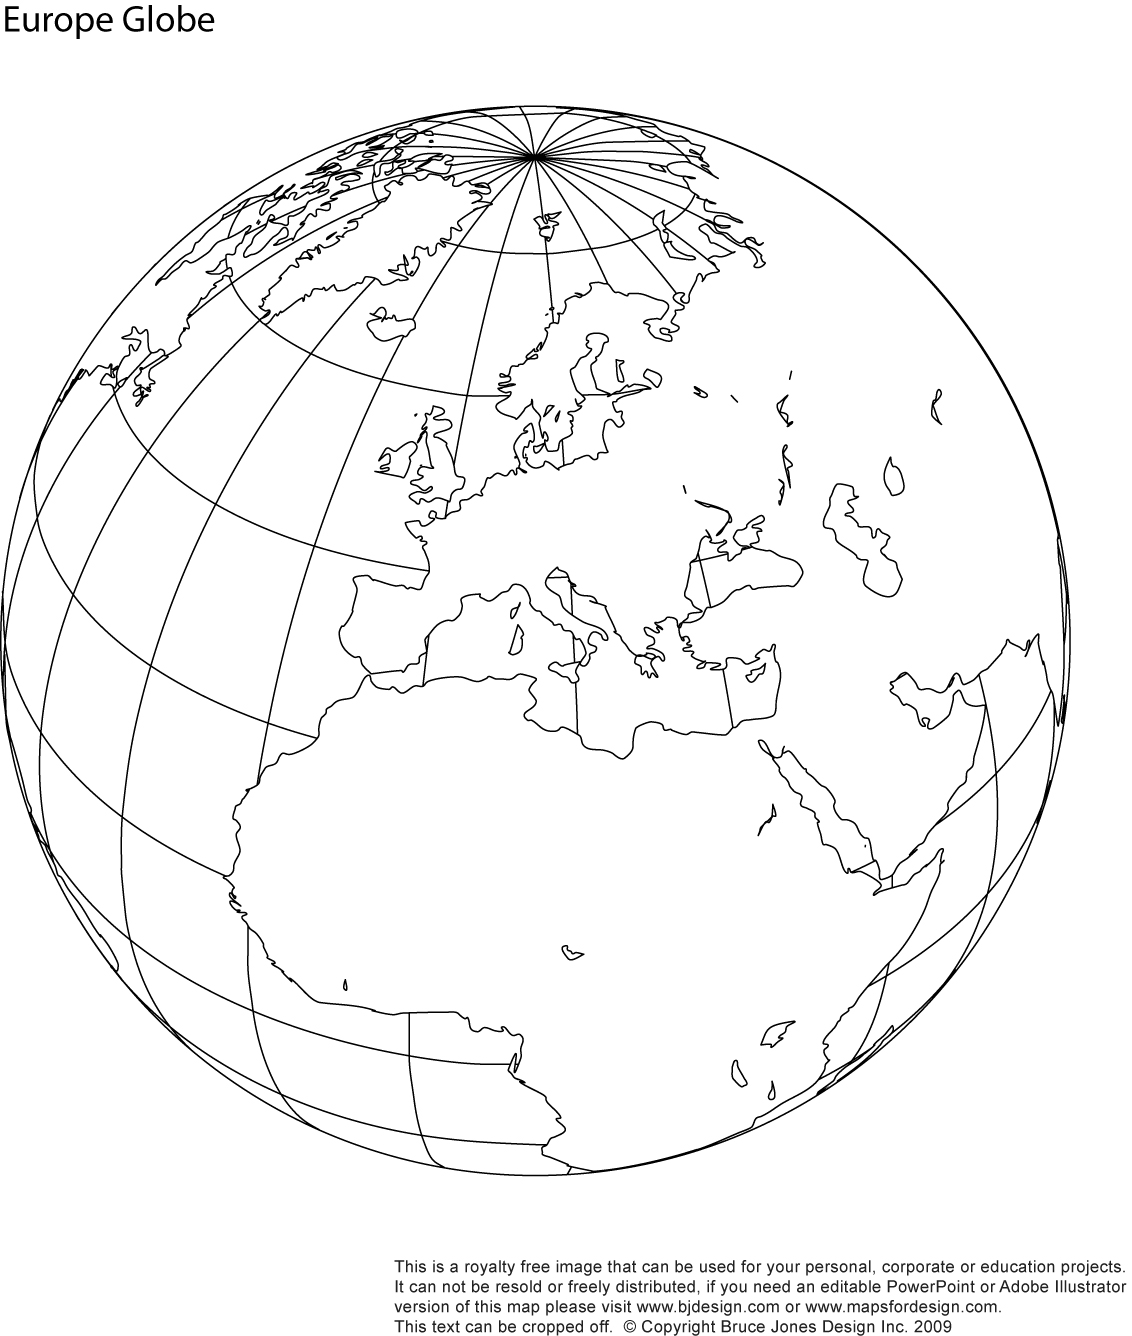 World Globe Europe Map, printable blank, royalty free, jpg